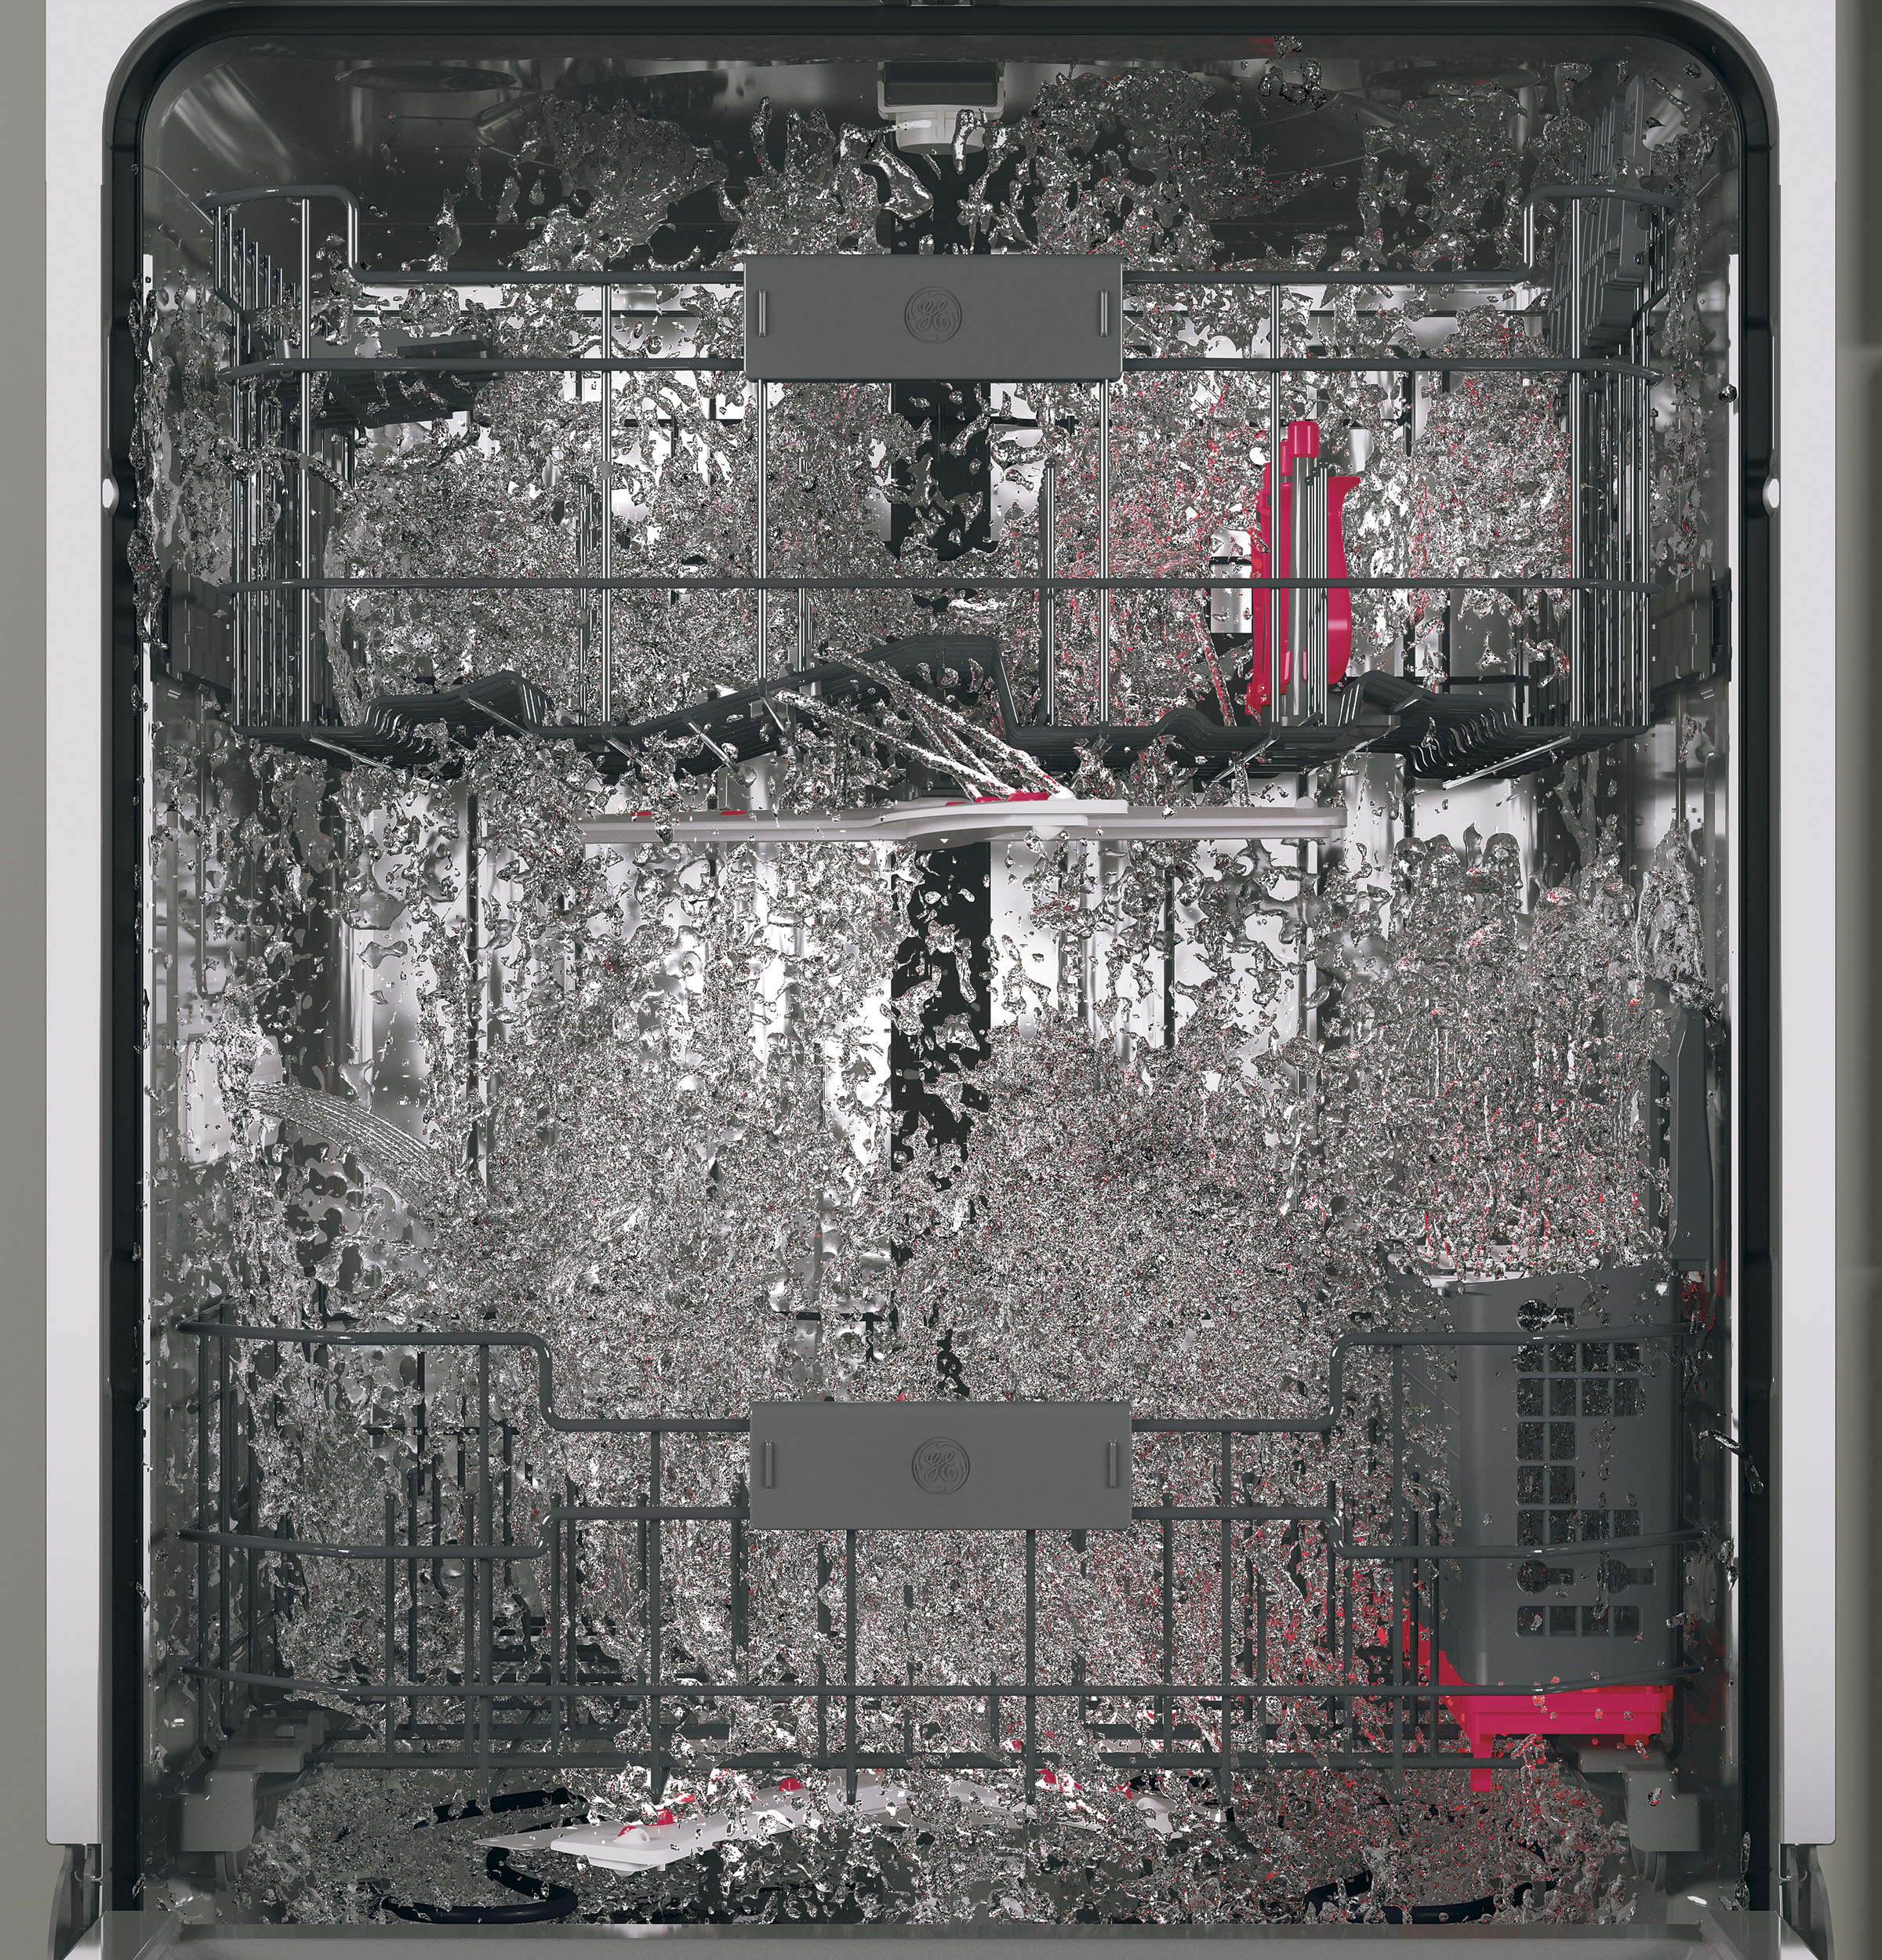 Model: PDT855SIJII | GE Profile™ Stainless Steel Interior Dishwasher with Hidden Controls